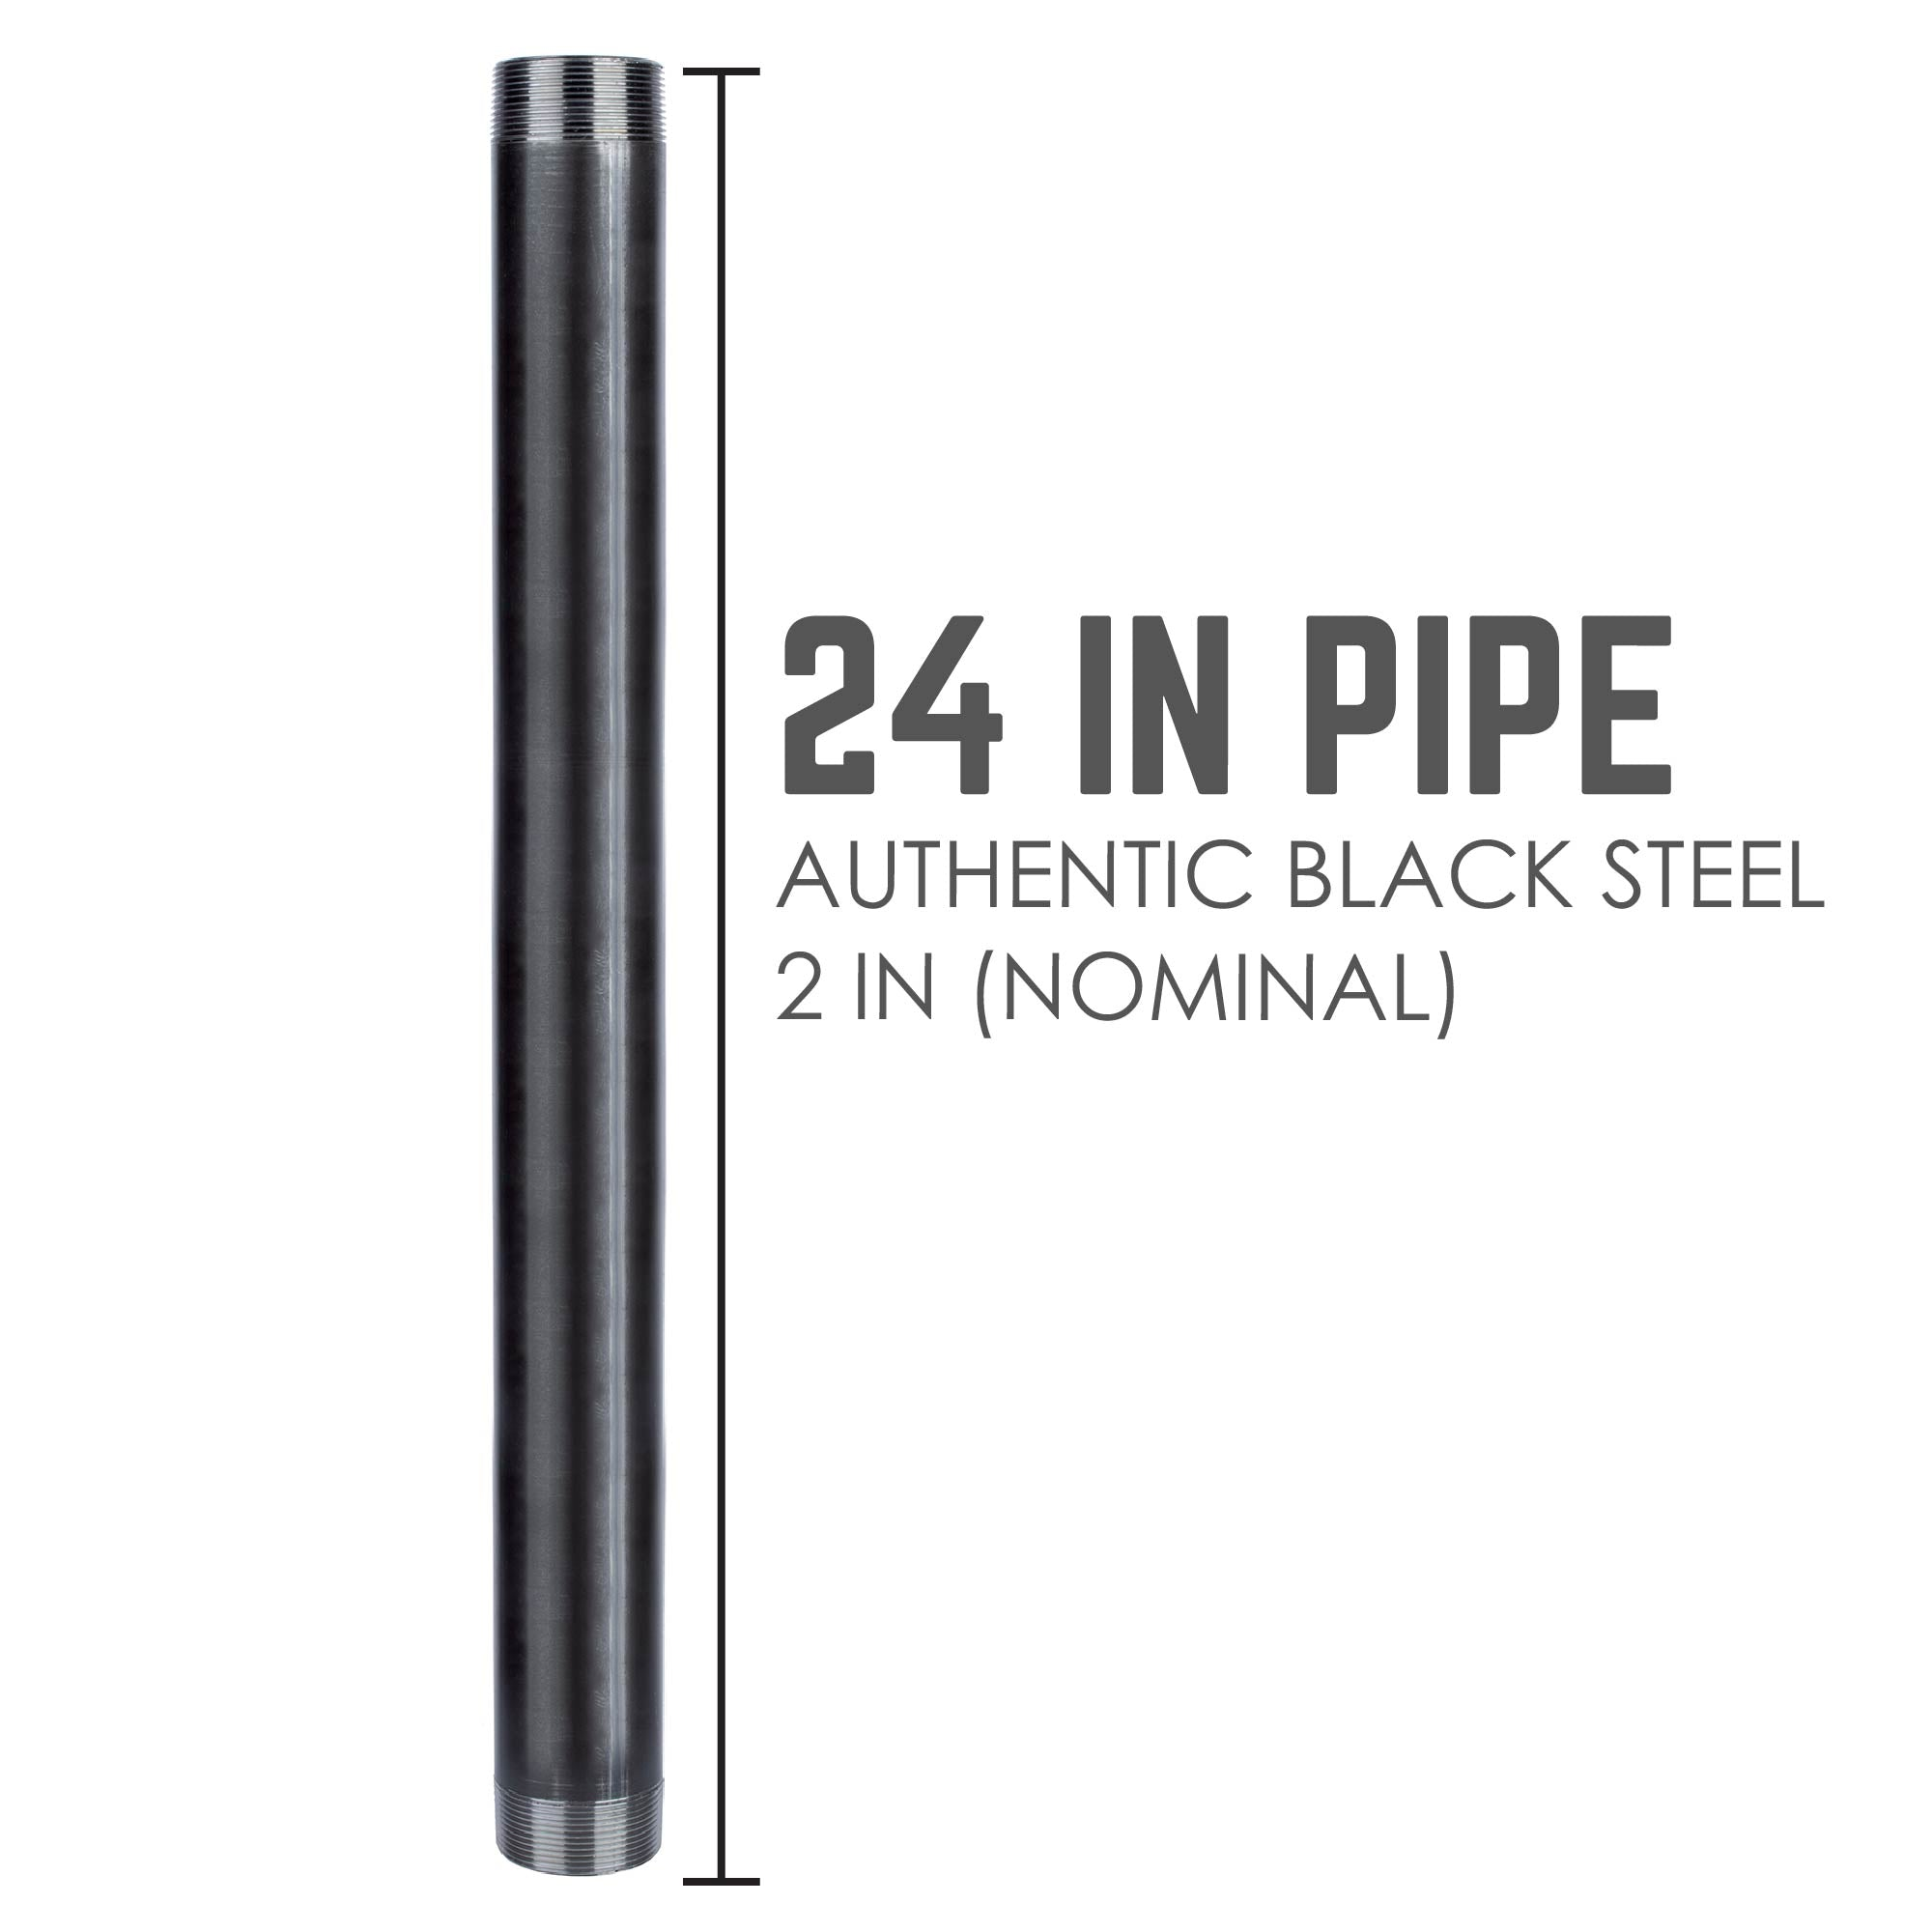 2 In X 24 In Black Pipe - Pipe Decor